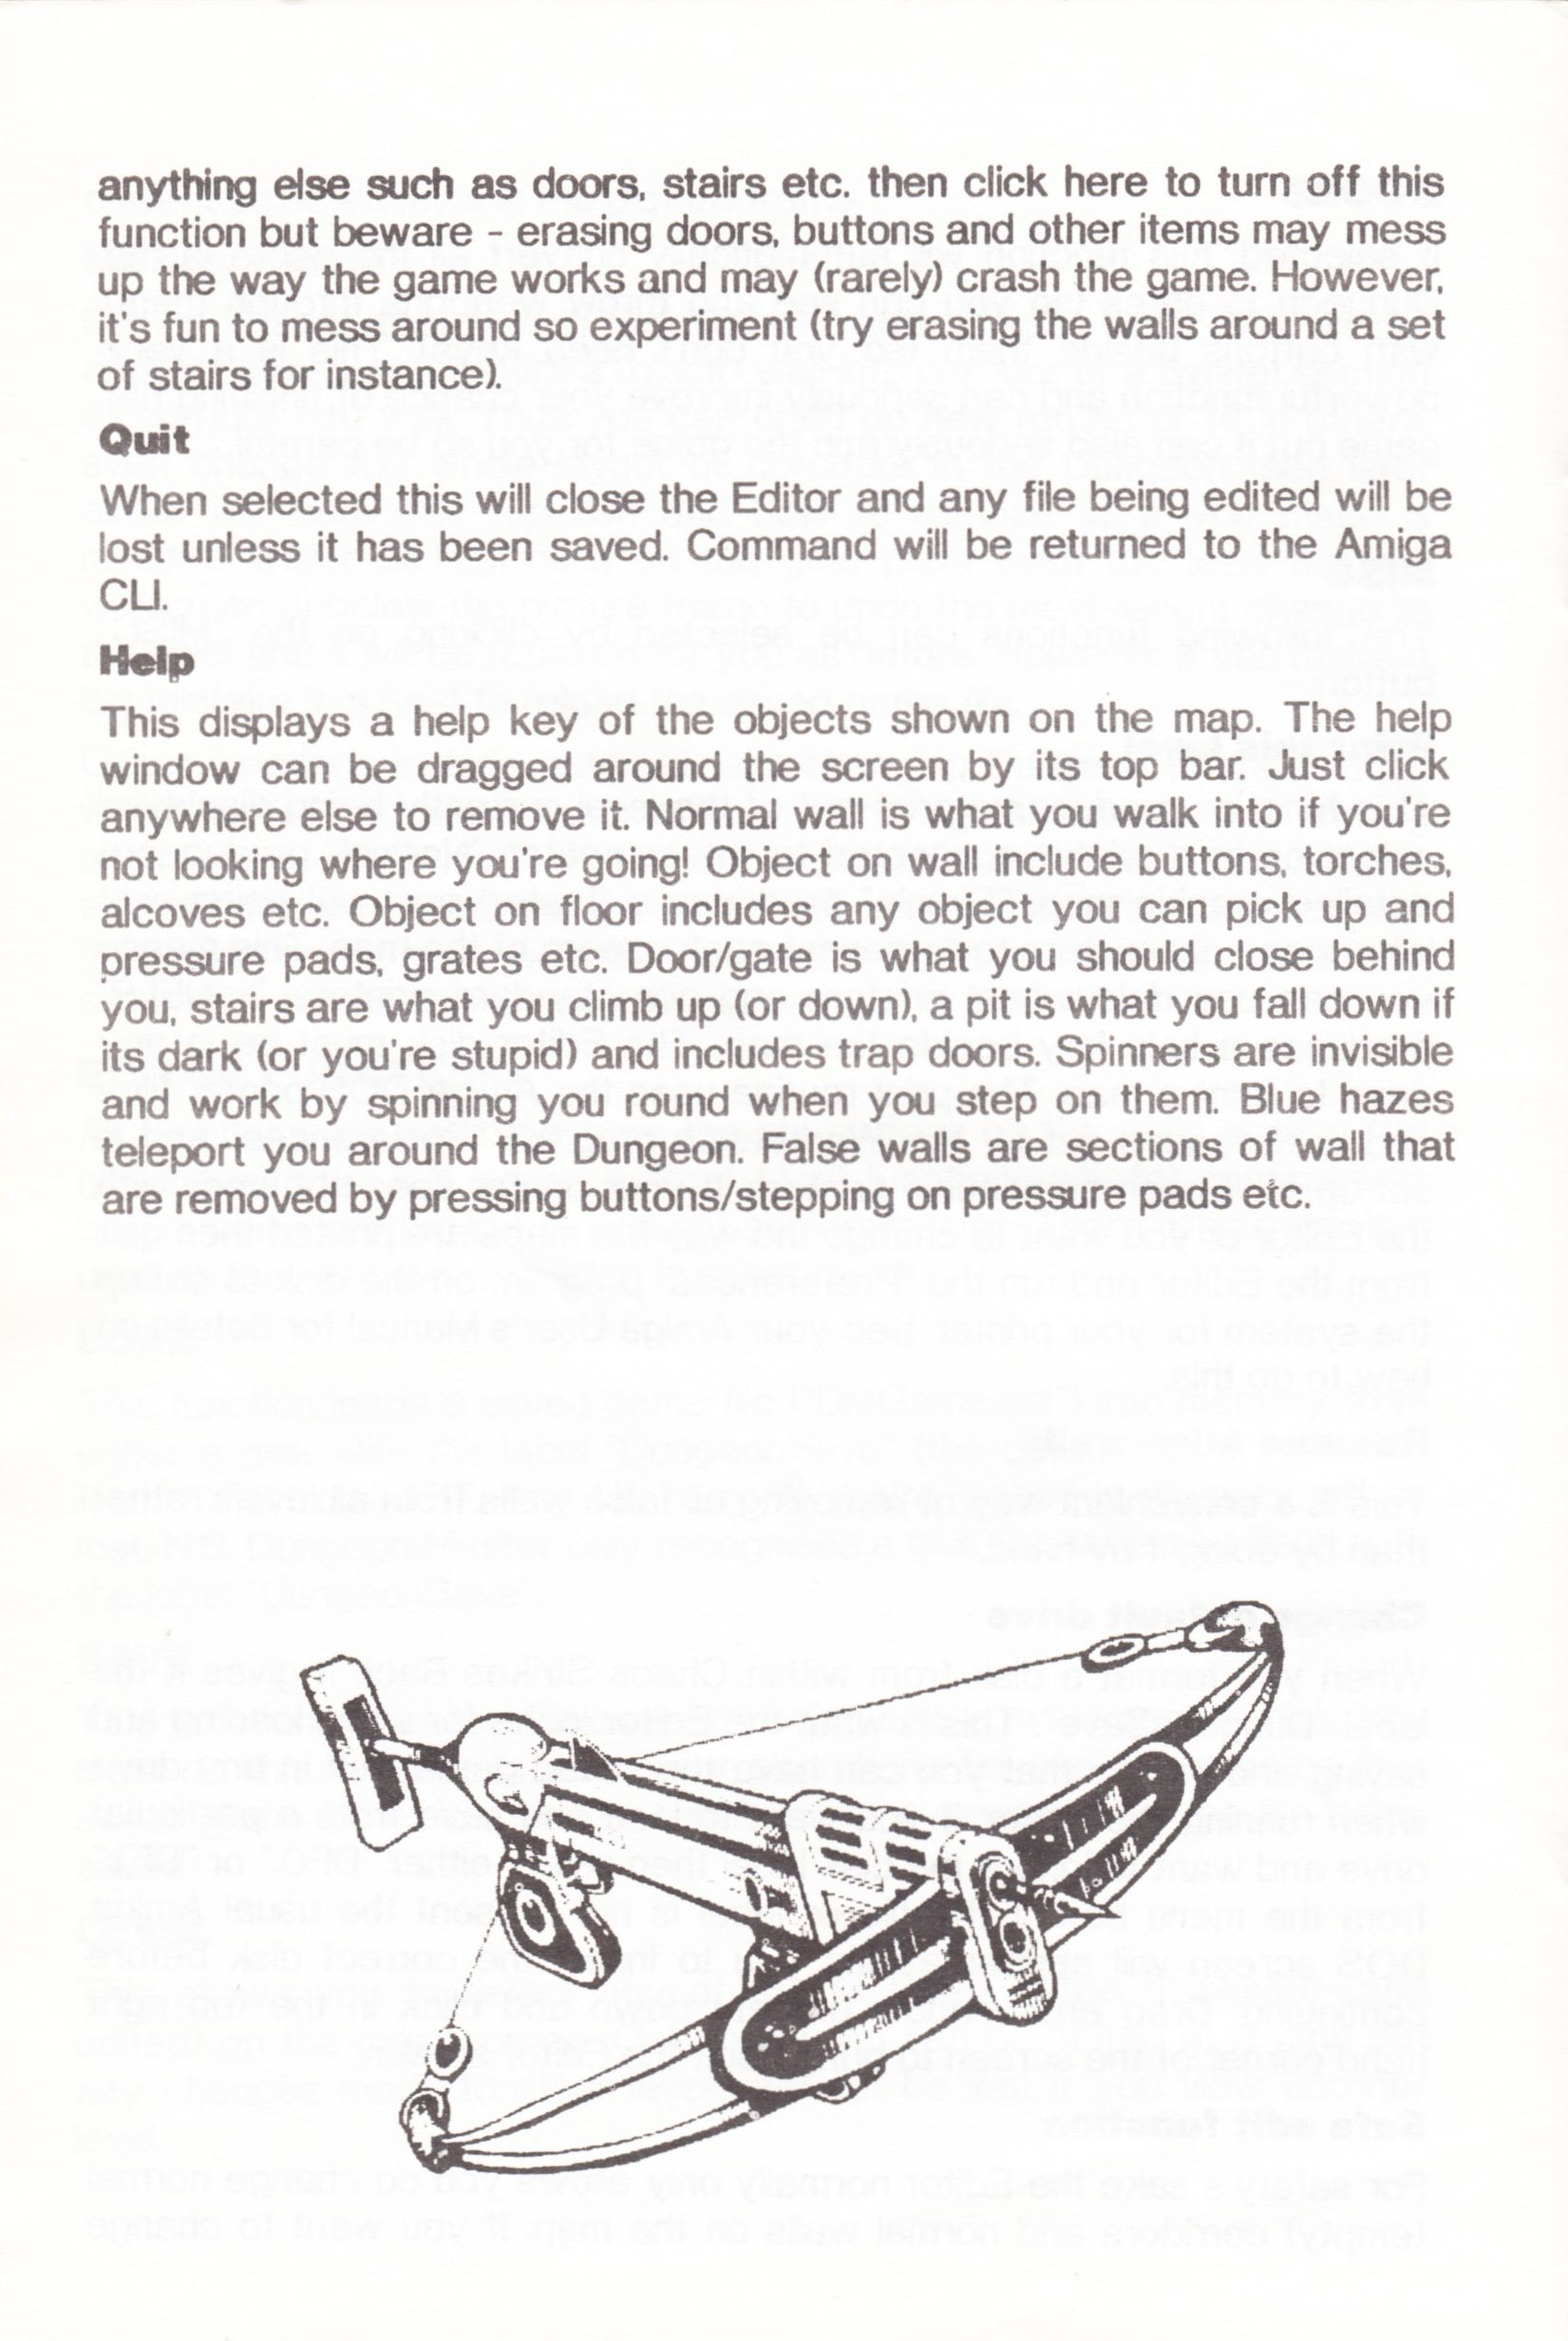 Tool - The Chaos Editor - UK - Atari ST - Manual - Page 020 - Scan